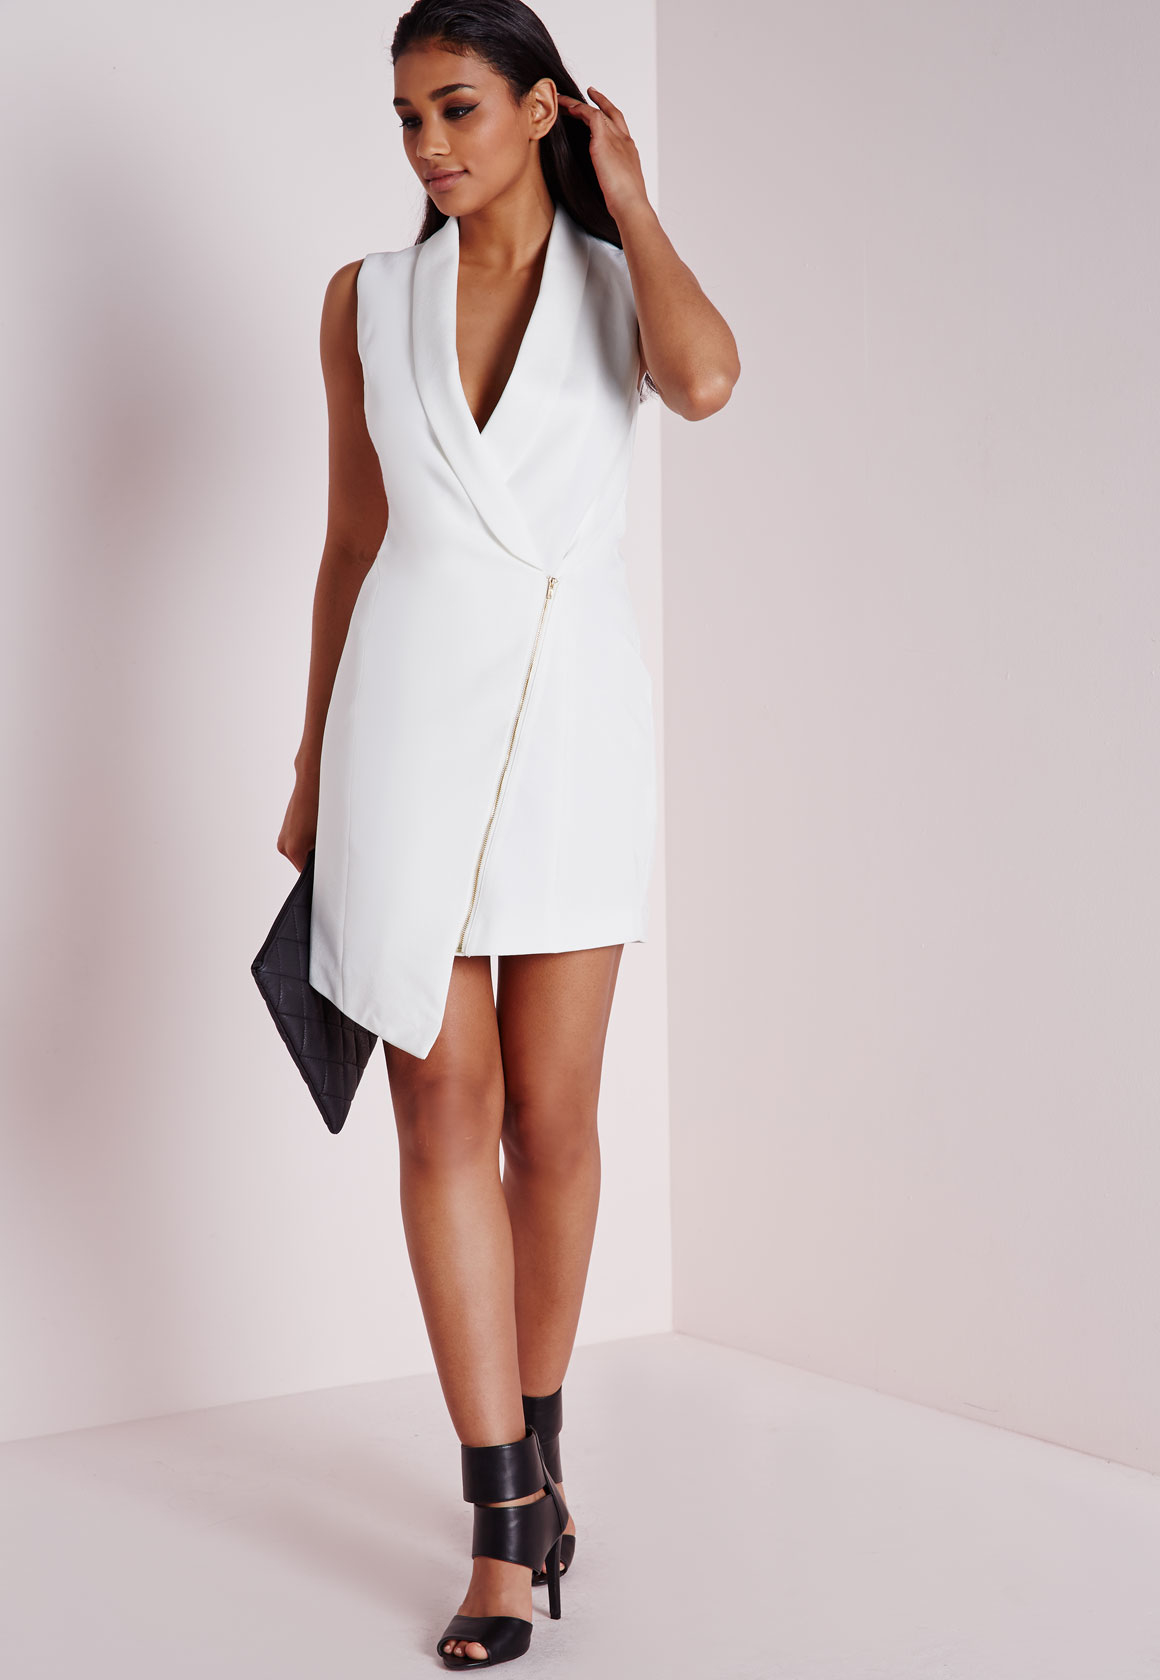 lyst missguided crepe sleeveless blazer dress white in white. Black Bedroom Furniture Sets. Home Design Ideas